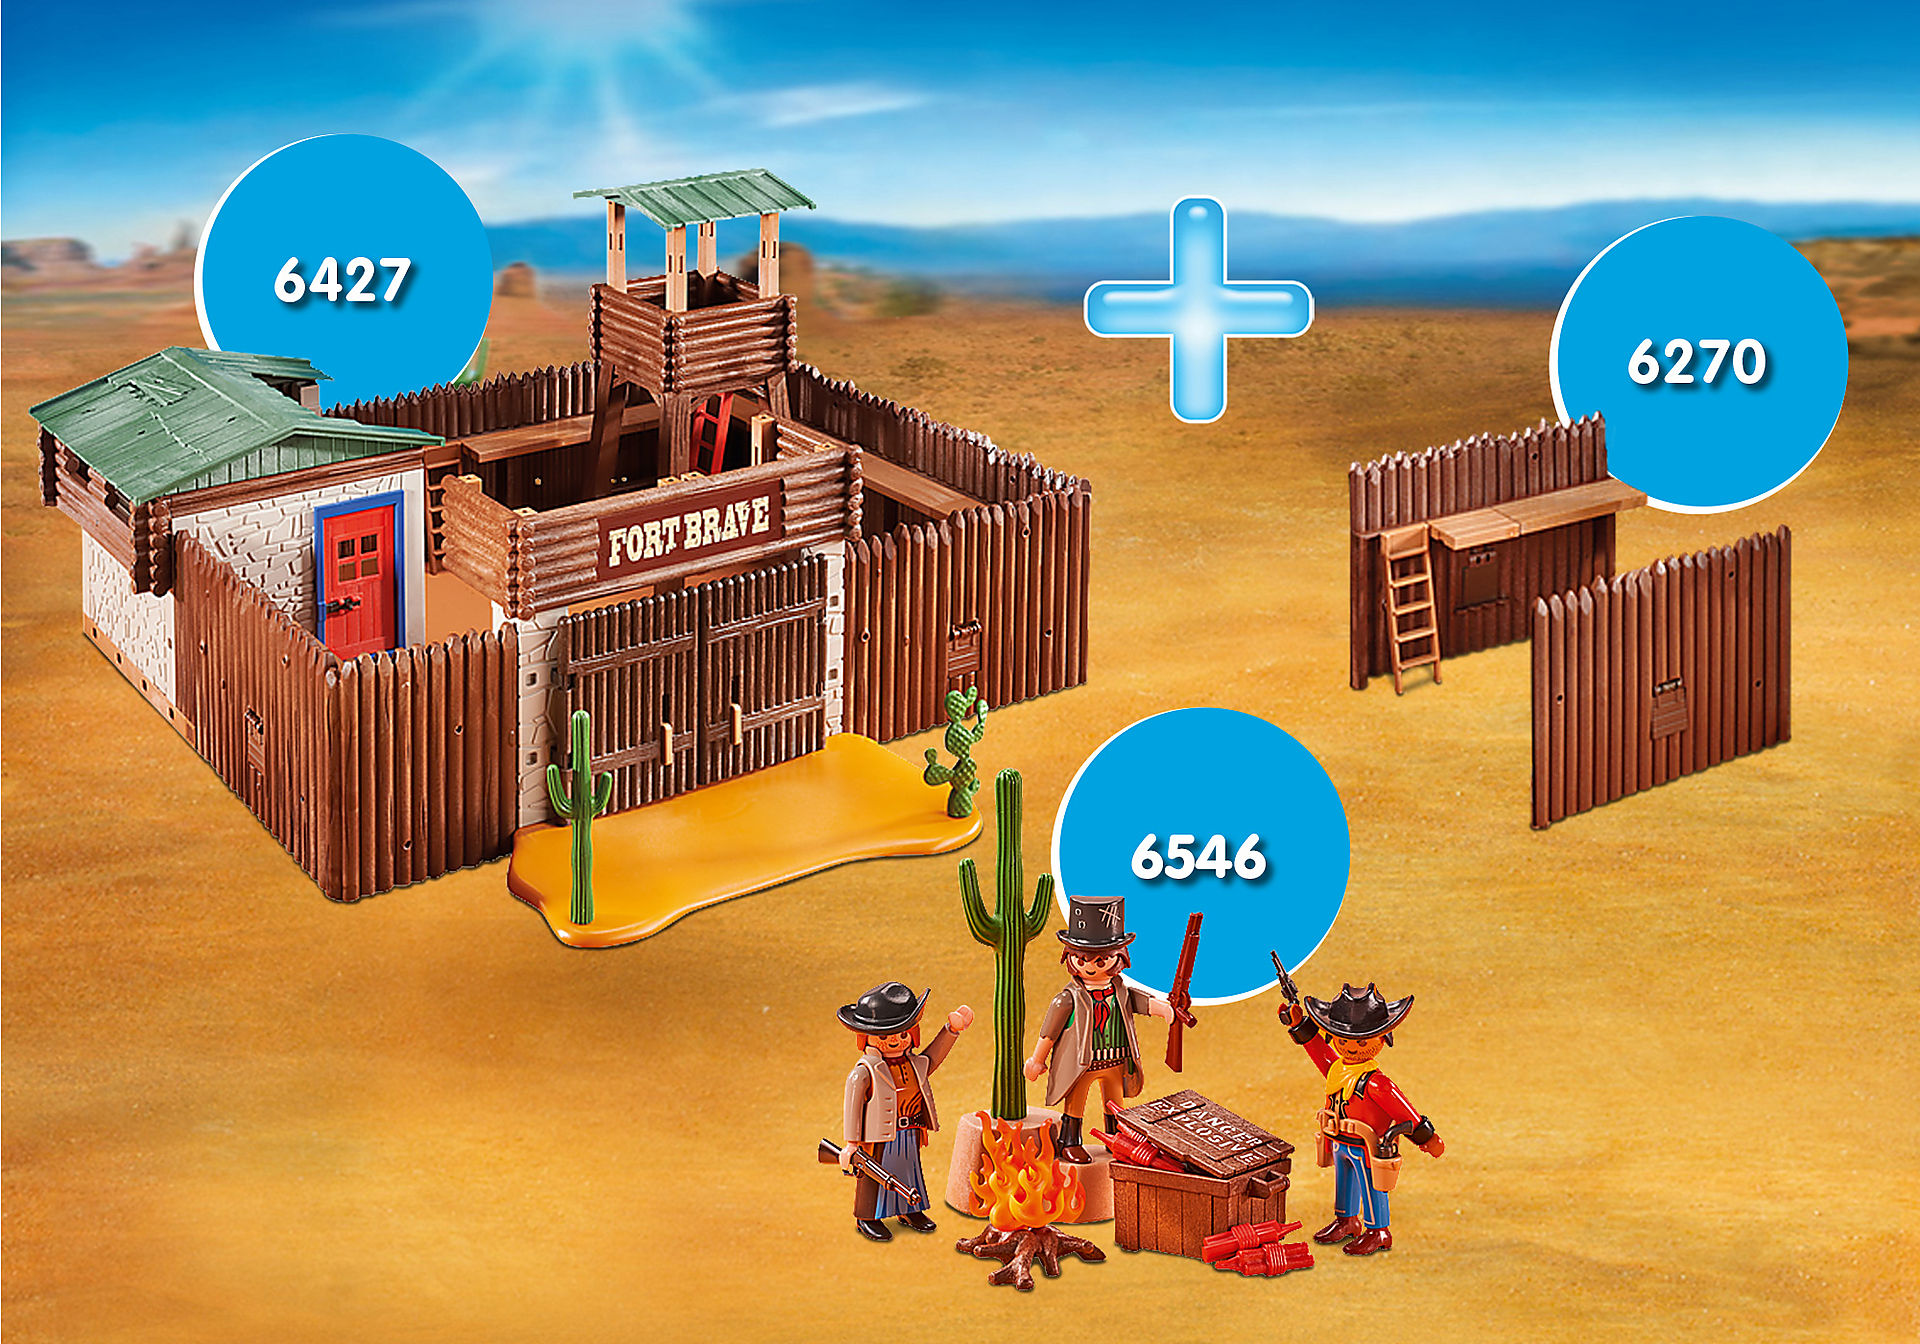 http://media.playmobil.com/i/playmobil/PM1911A_product_detail/Pack Promocional Fuerte del Oeste